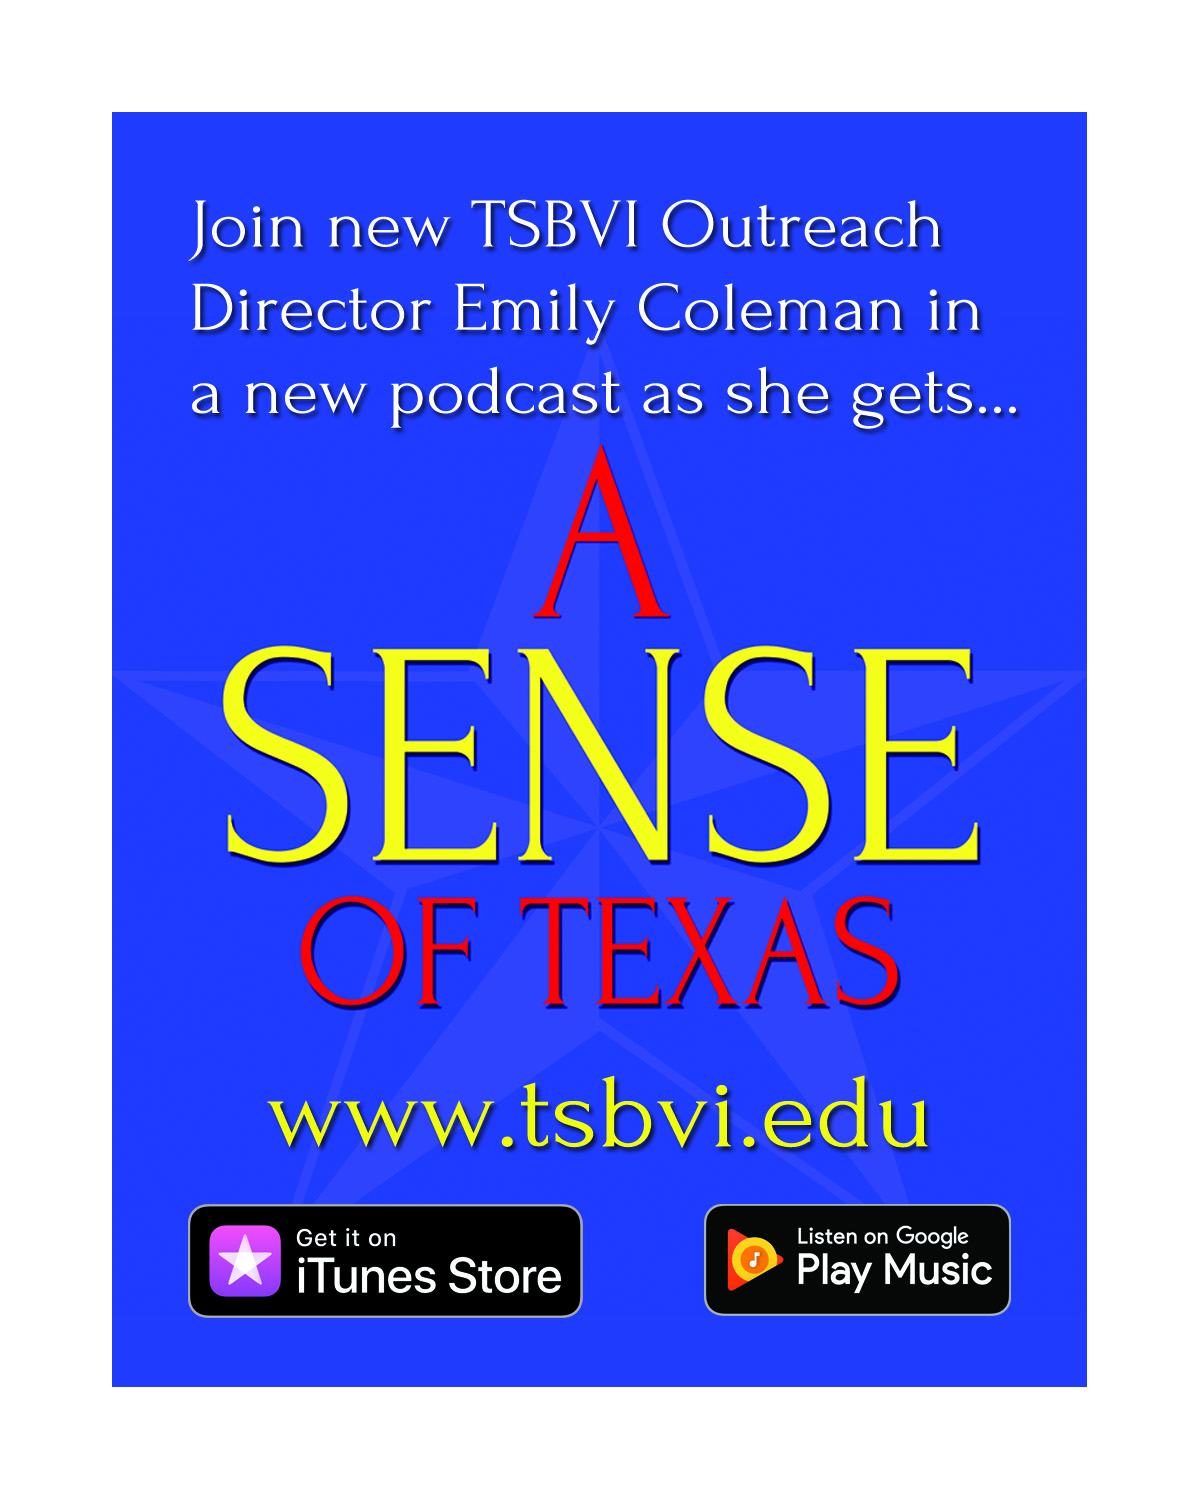 Join new TSBVI Outreach Director Emily coleman in a new podcast as she gets... A Sense of Texas. Available in the iTunes Store and on Google Play